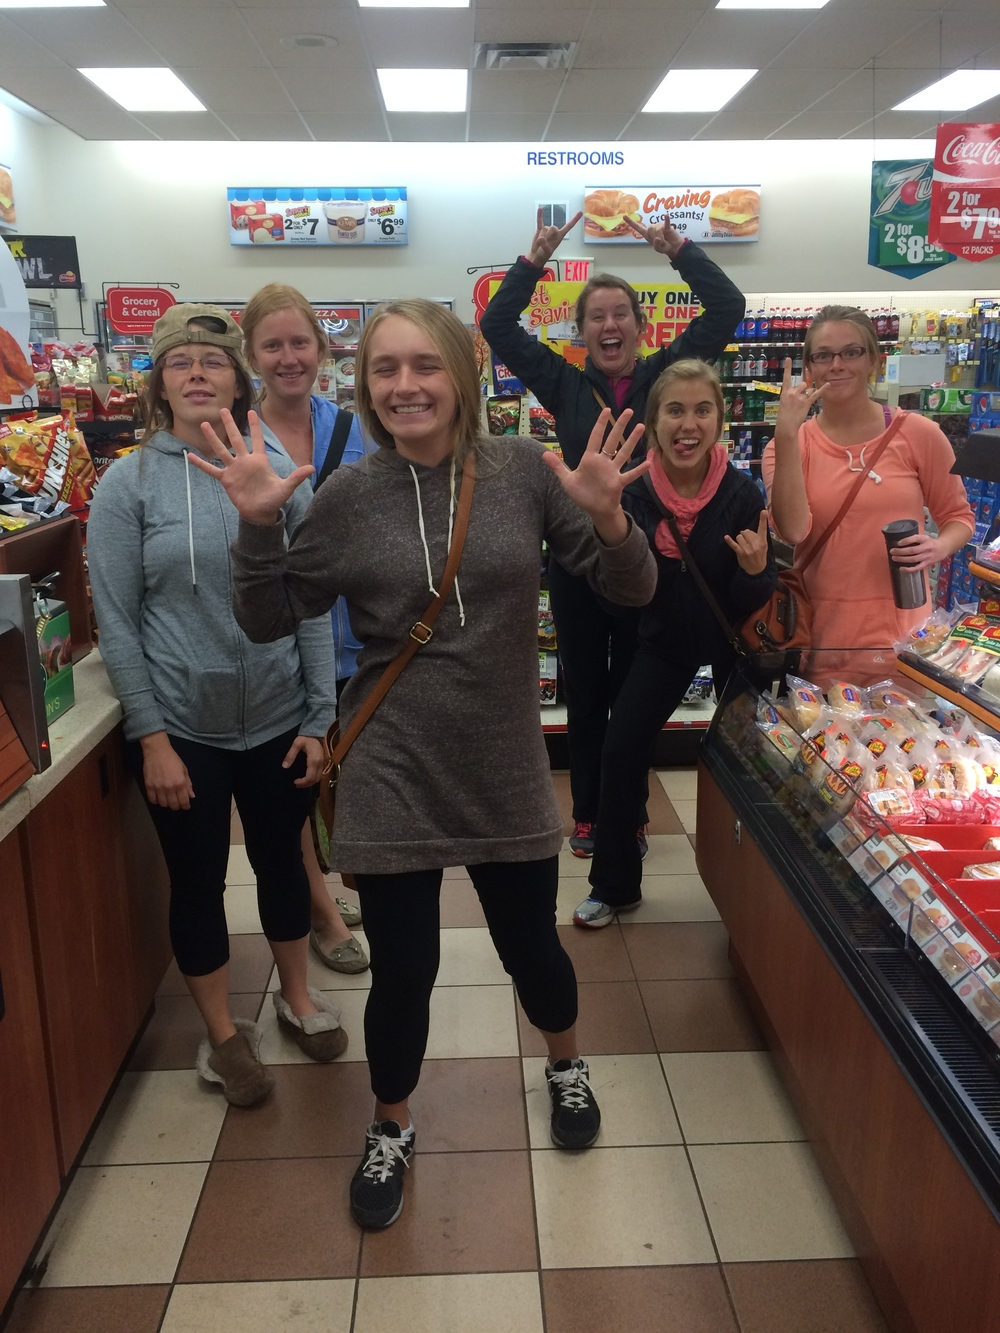 Grocery store stop